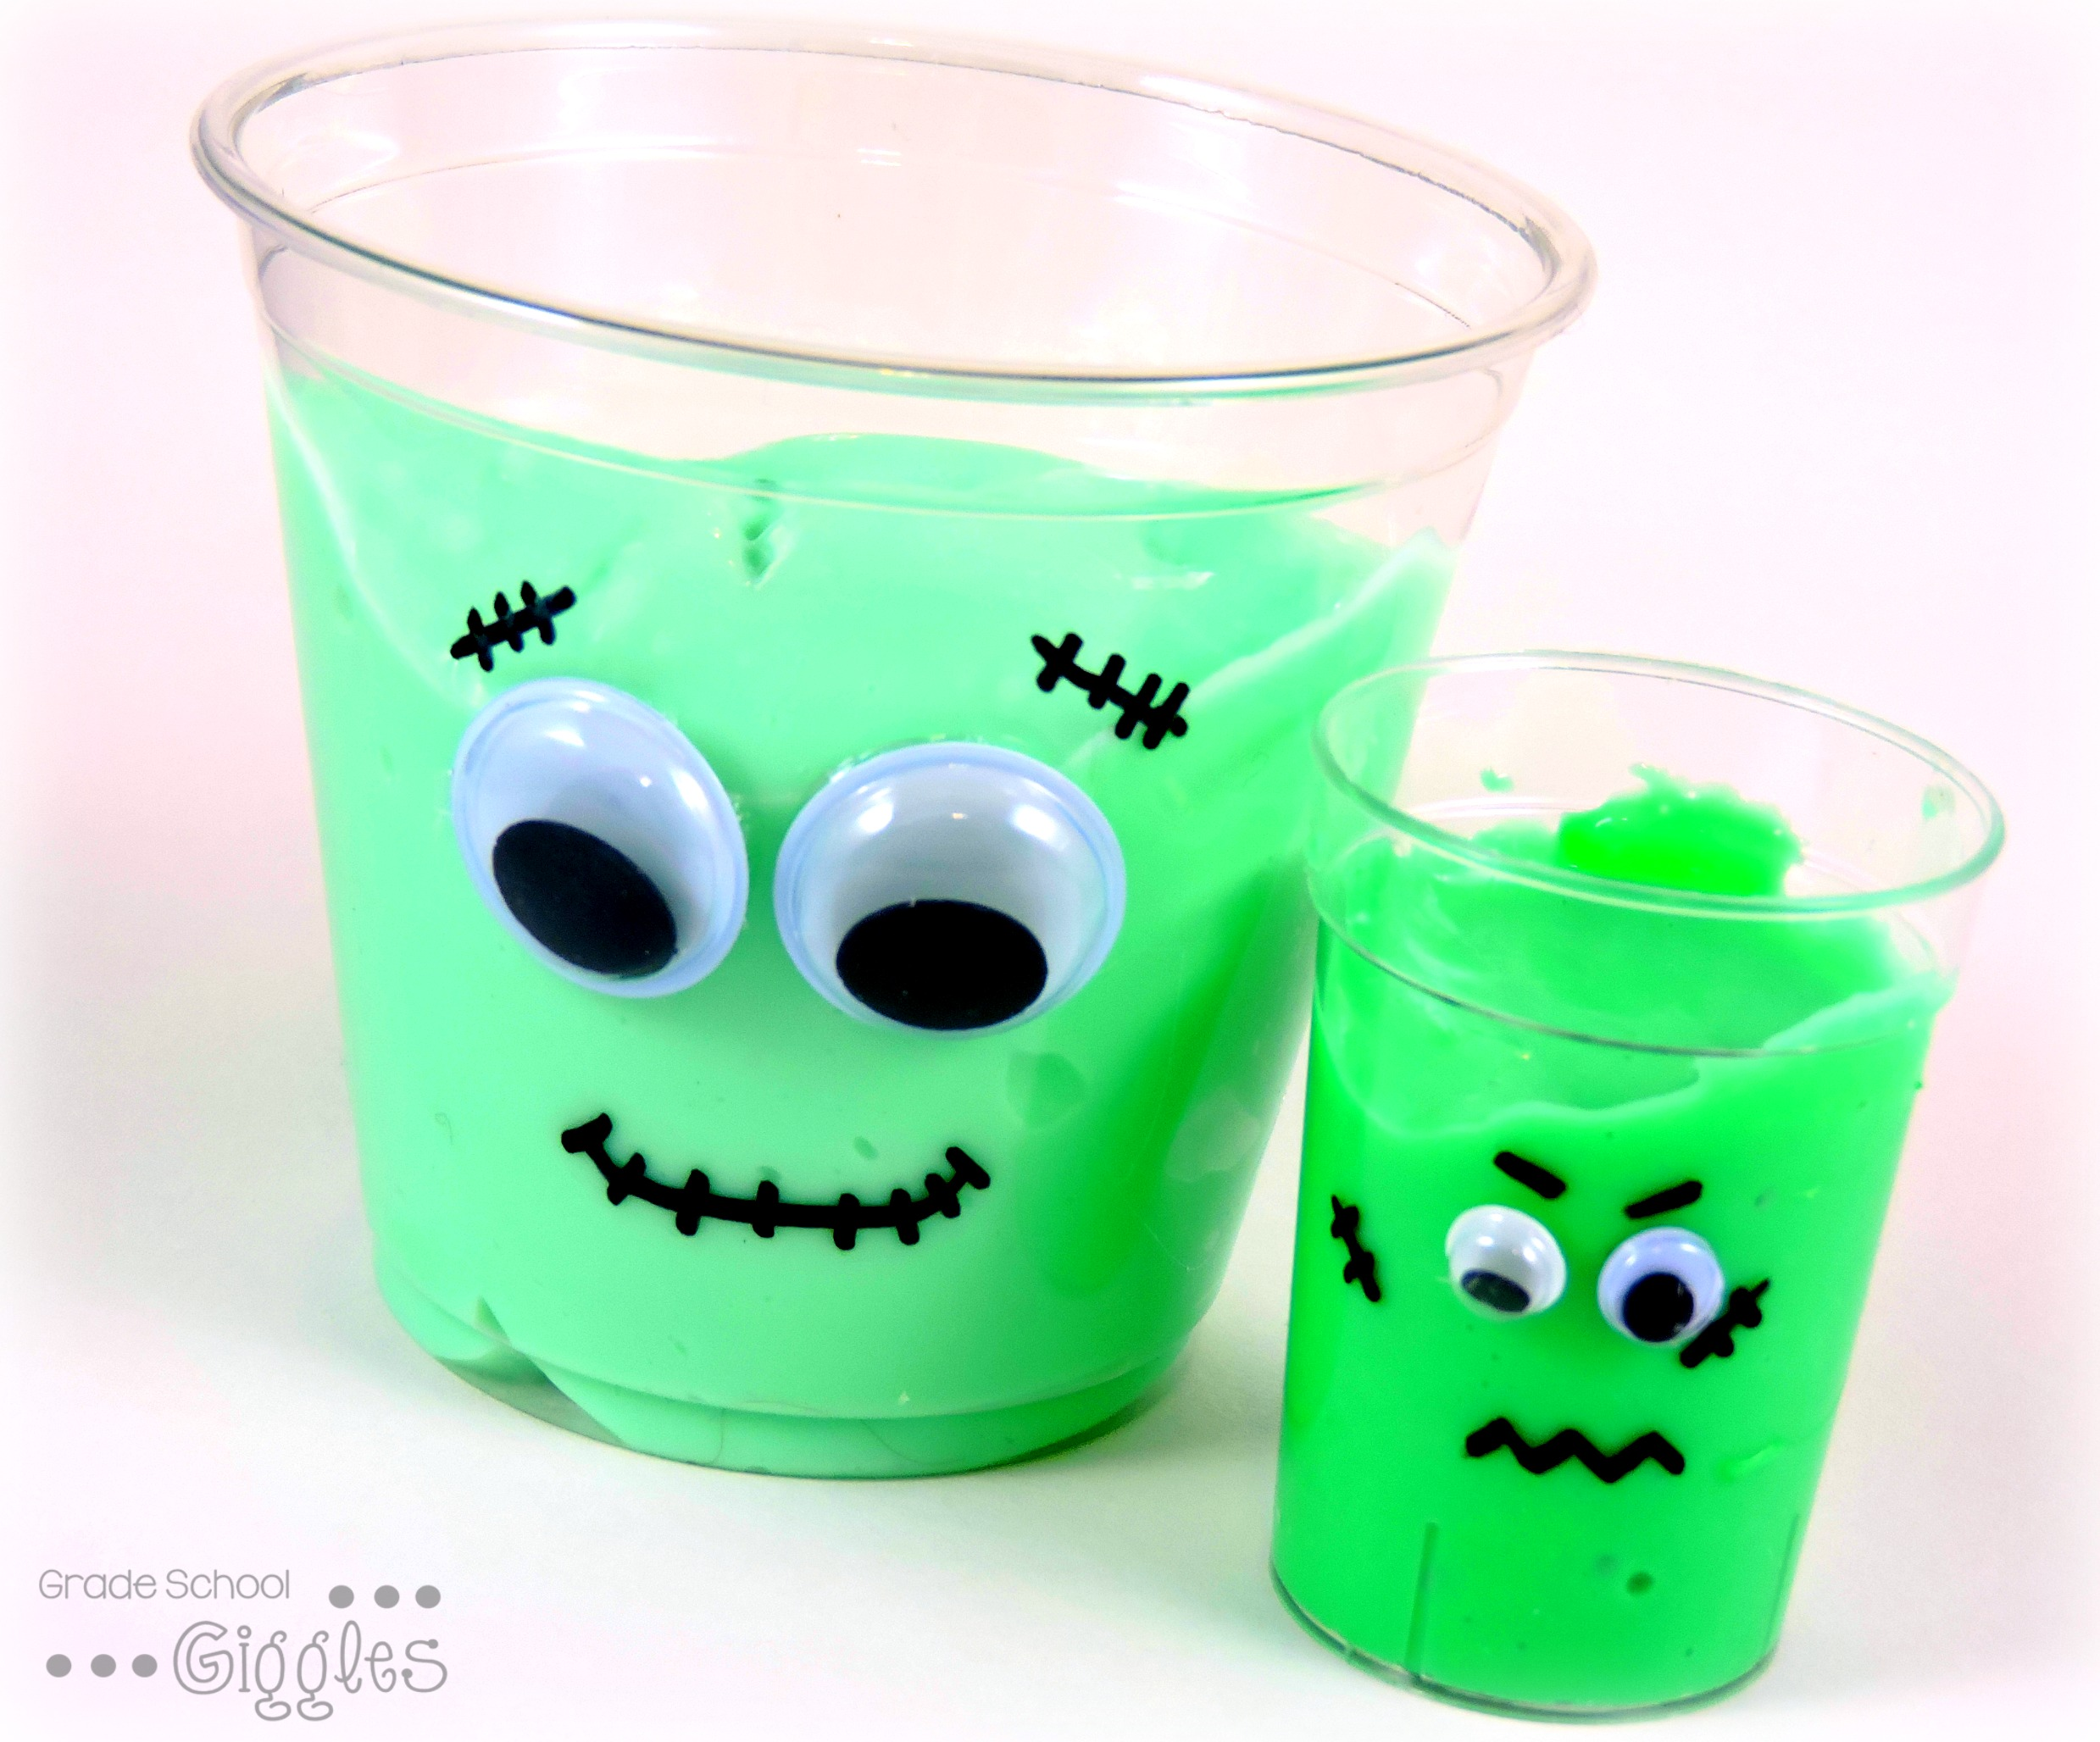 Make Your Own Silly Putty Goo Franken Slime Project